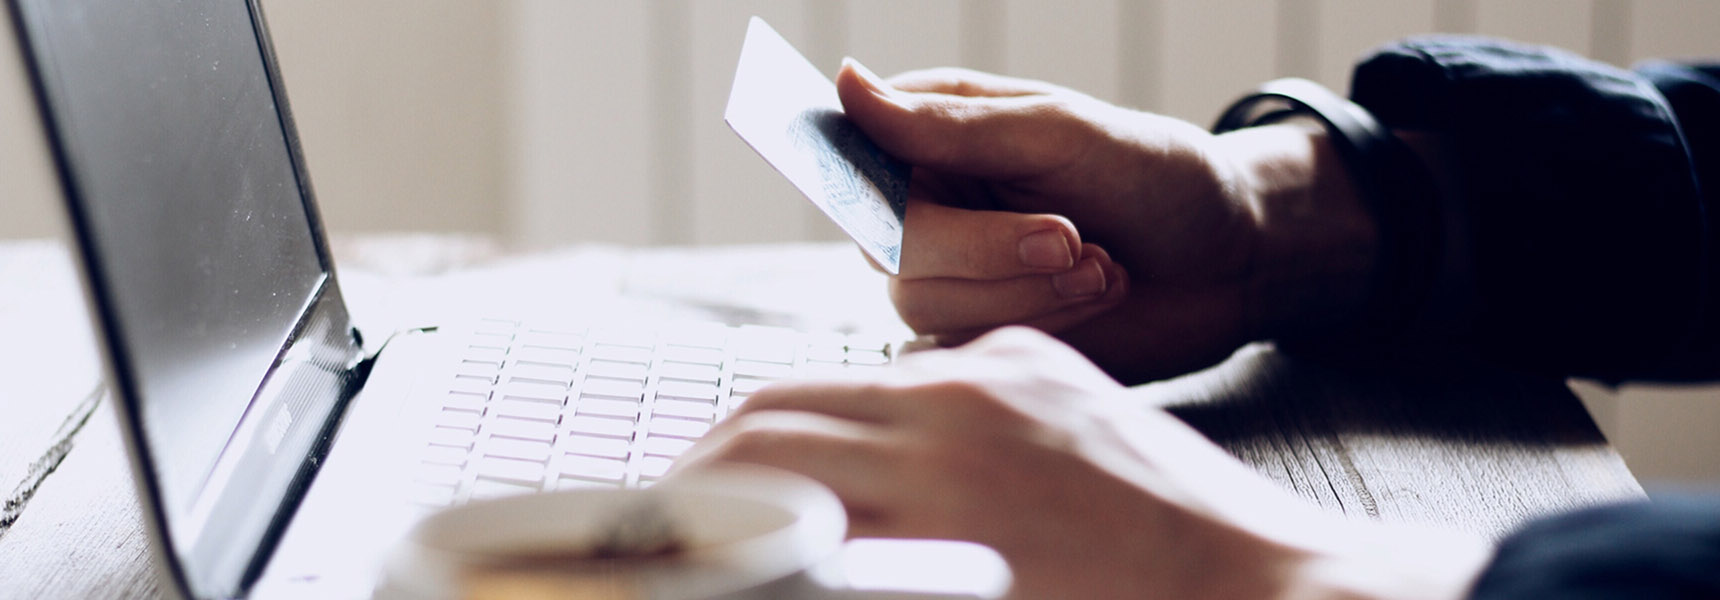 Photo of a person checking their credit score online.